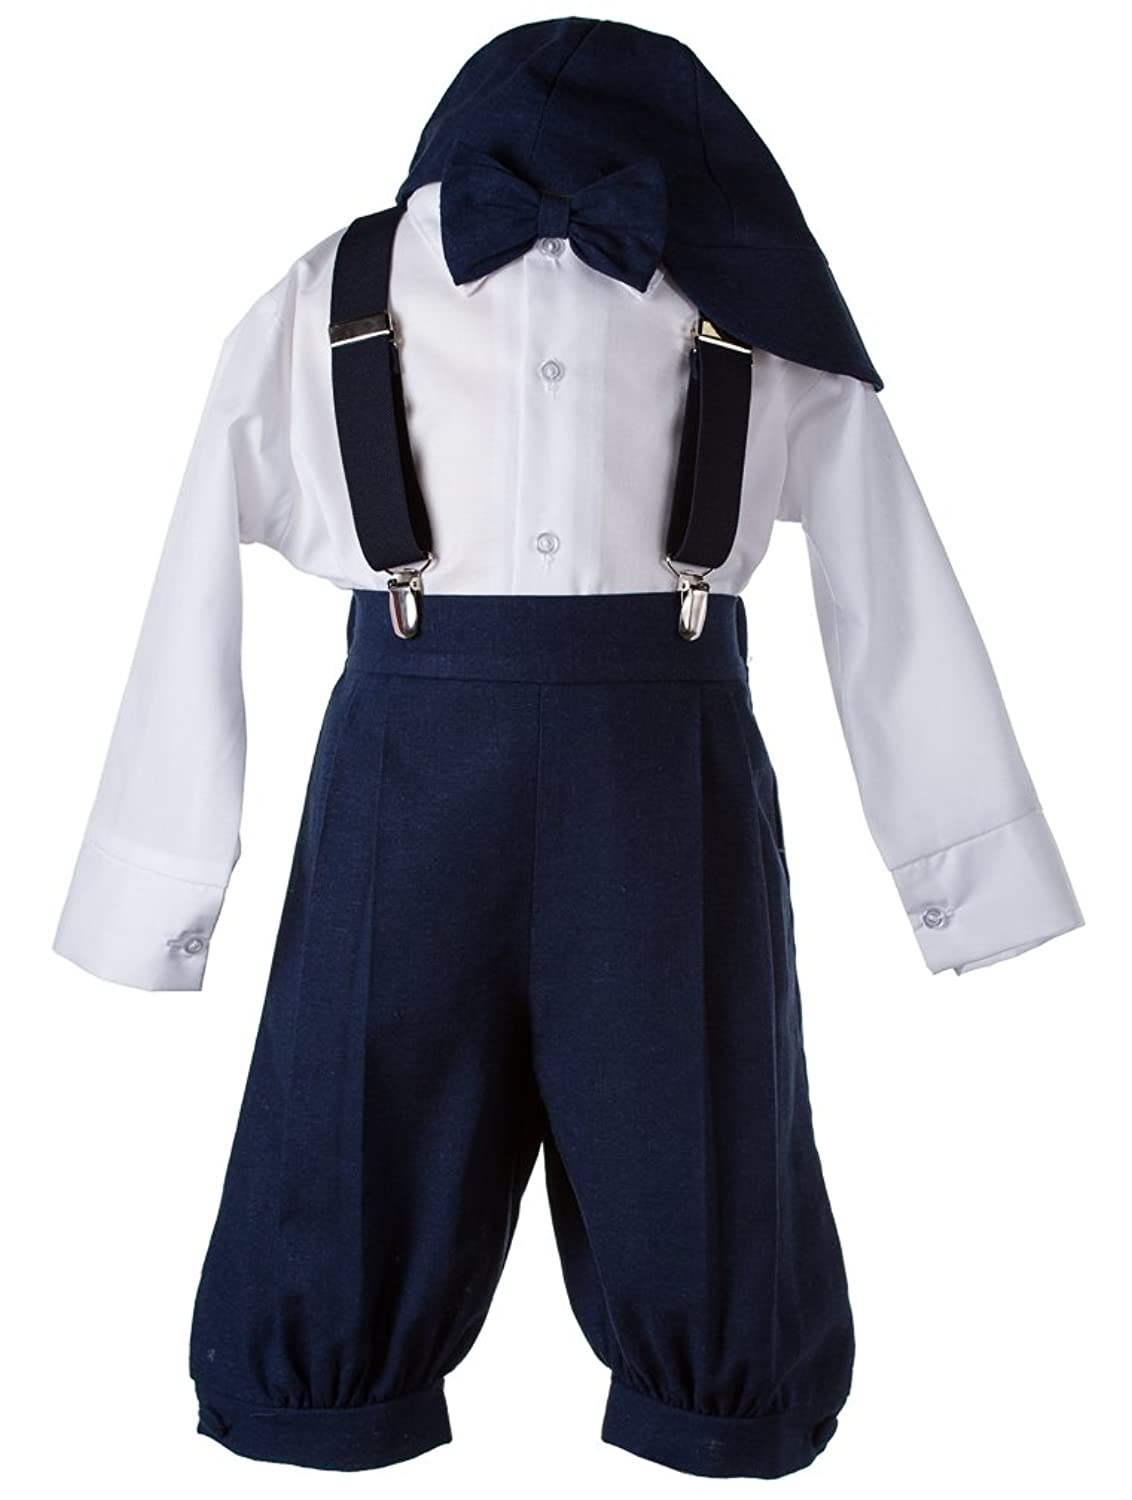 1920s Children Fashions: Girls, Boys, Baby Costumes Boys Navy Linen Knicker 5 Piece Outfit $32.95 AT vintagedancer.com